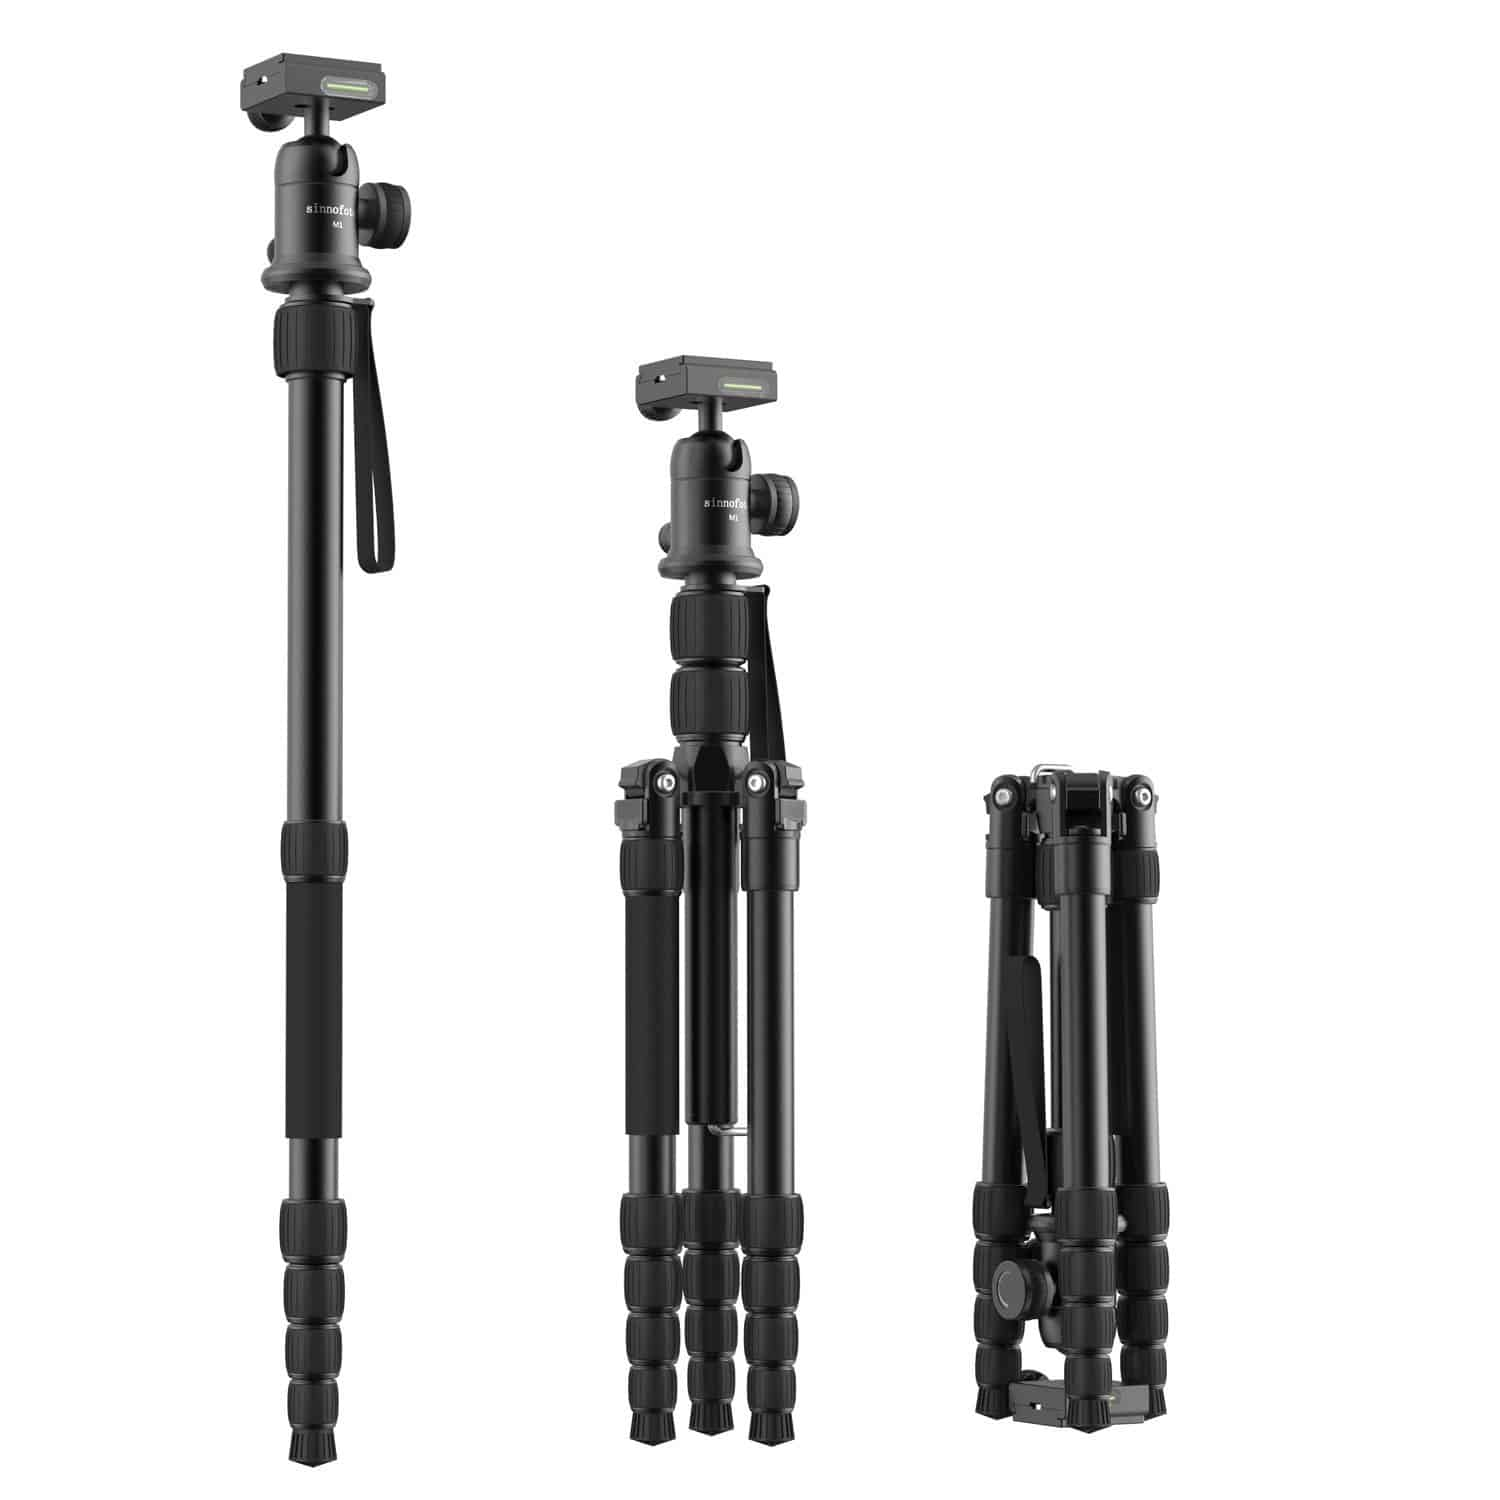 Sinnofoto M2522 Tripod Review